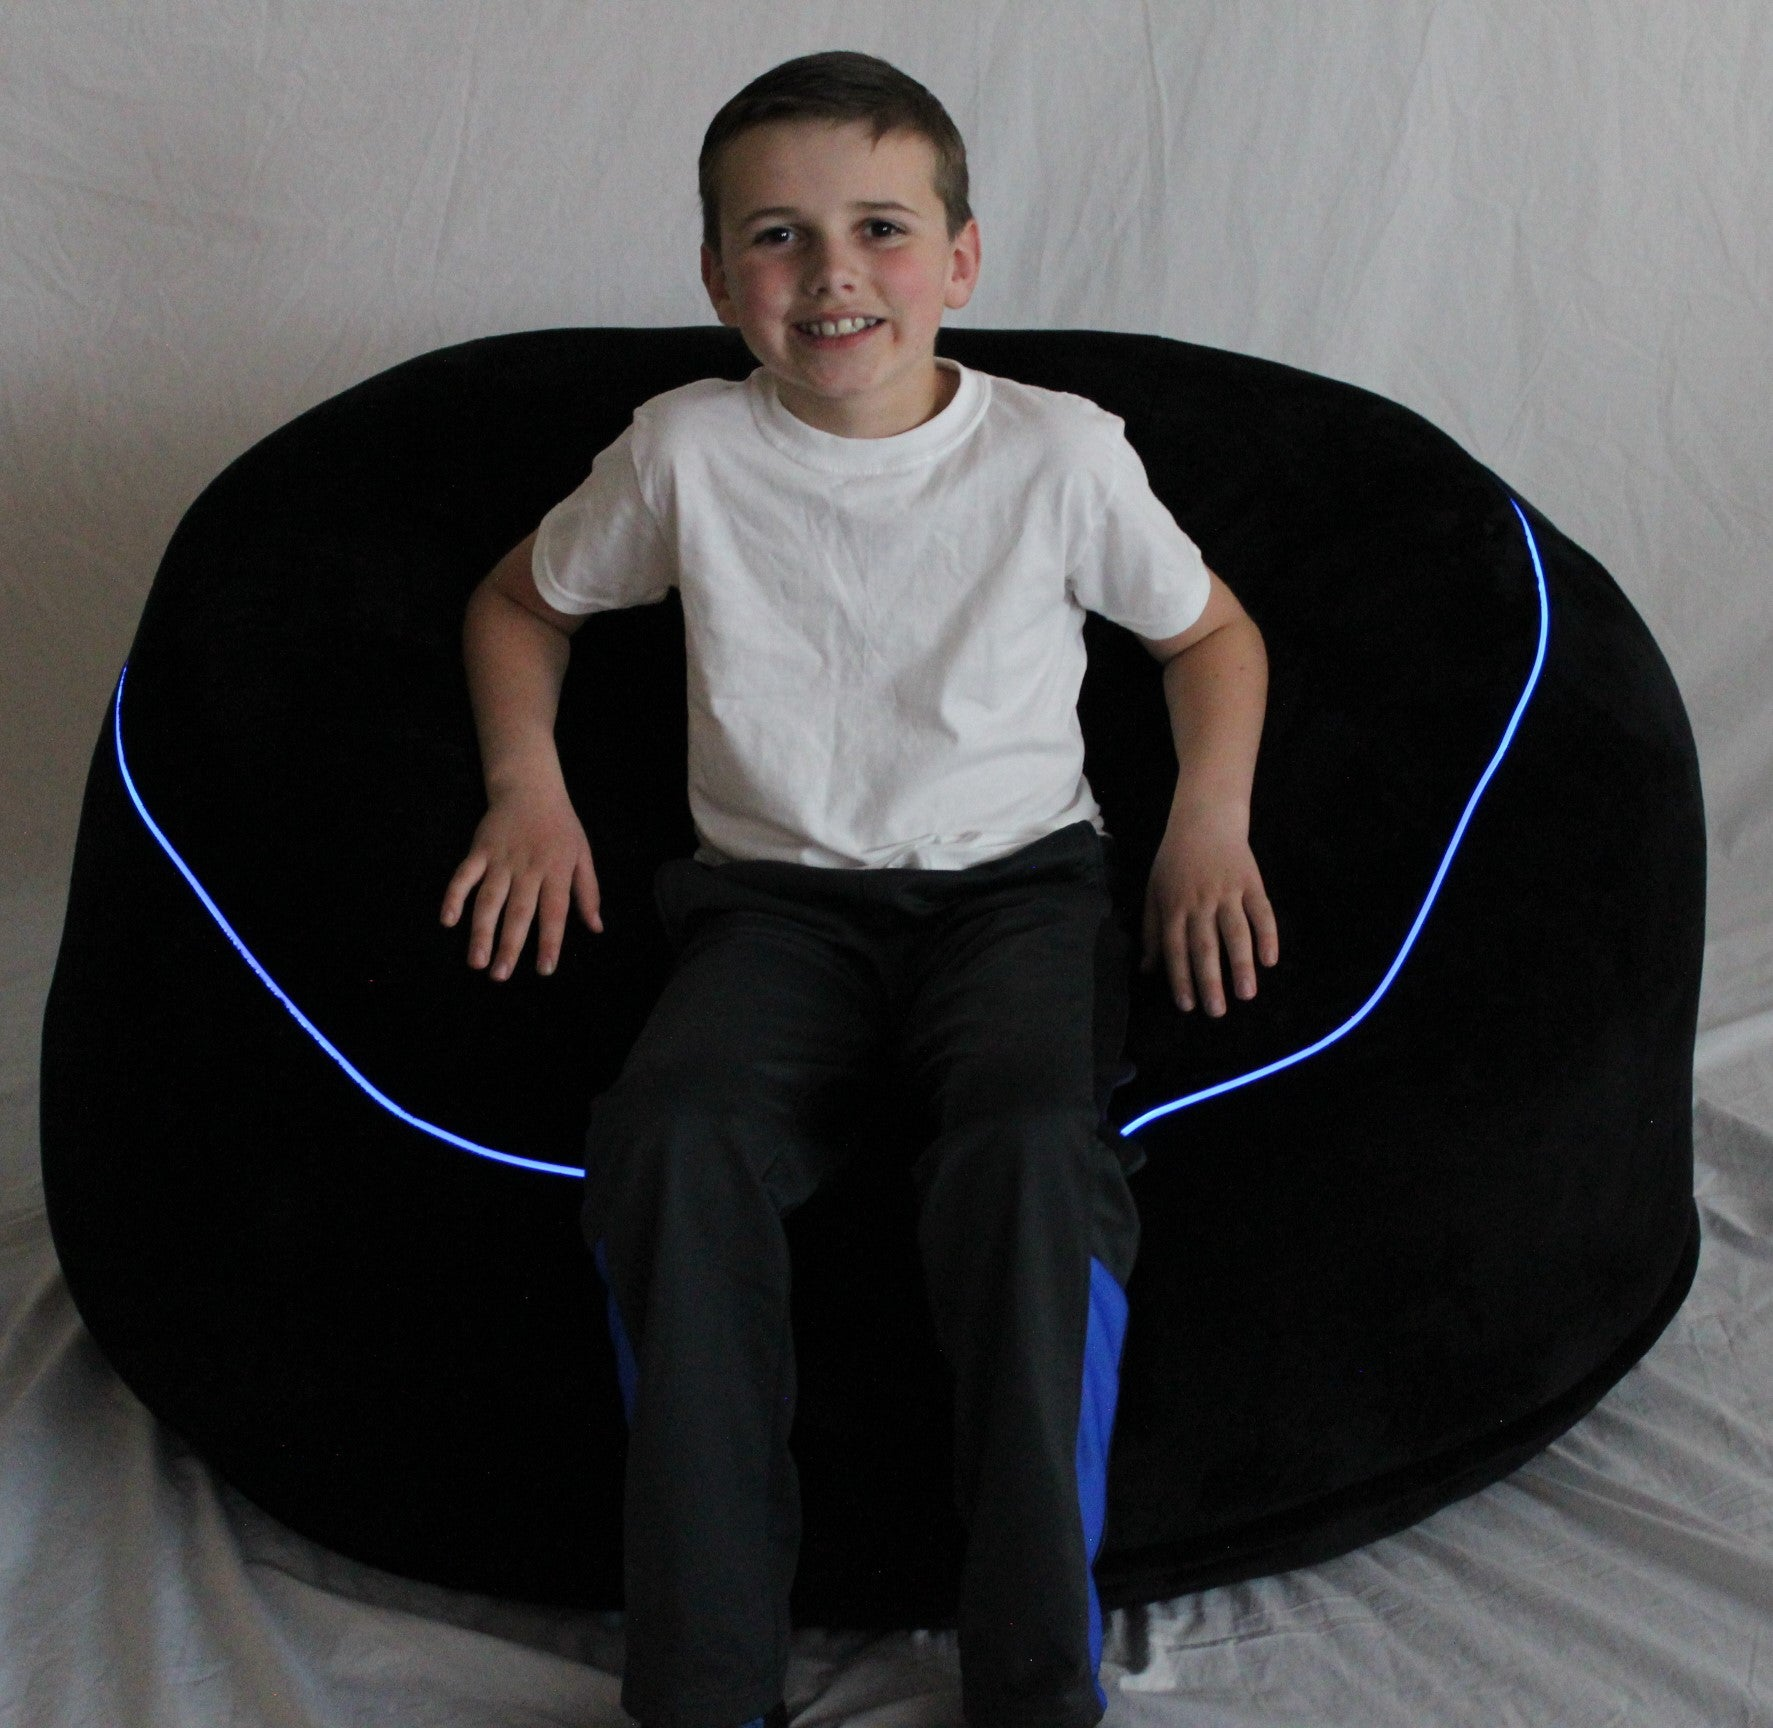 Incredible The Beam Bag Bean Bag Chair With Fiber Optic Lights Remote Squirreltailoven Fun Painted Chair Ideas Images Squirreltailovenorg